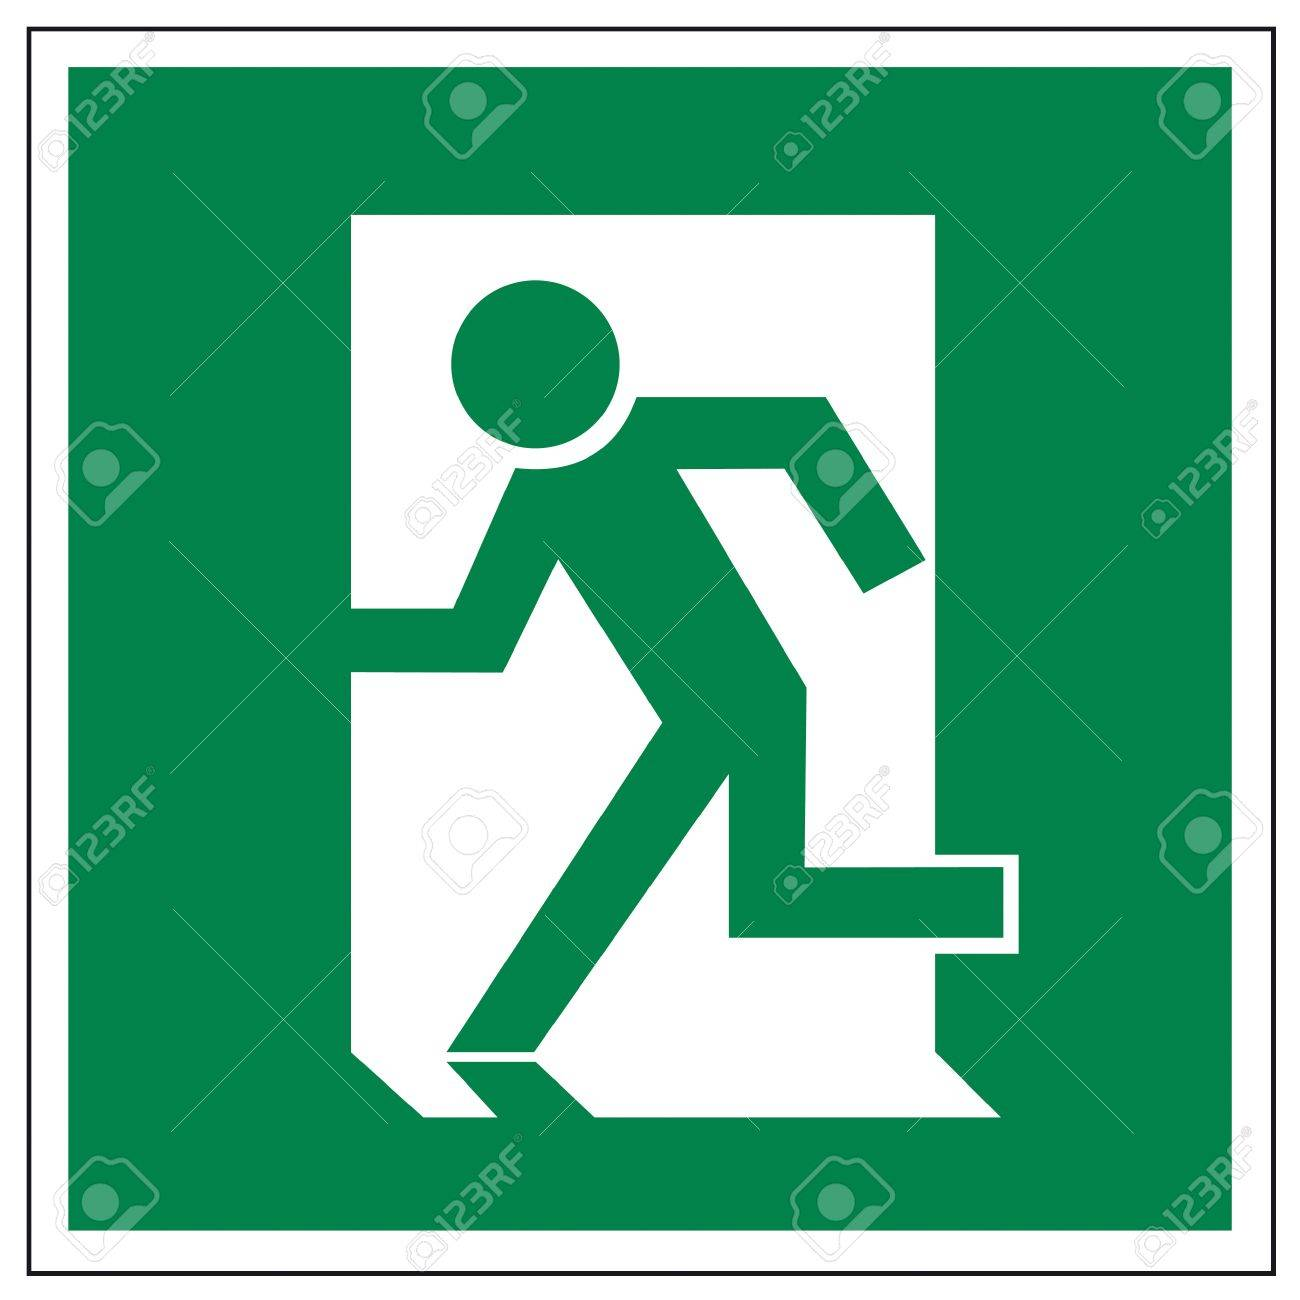 Emergency stop icon clipart emergency off - Emergency Exit Rescue Signs Icon Exit Emergency Arrow Flush Away